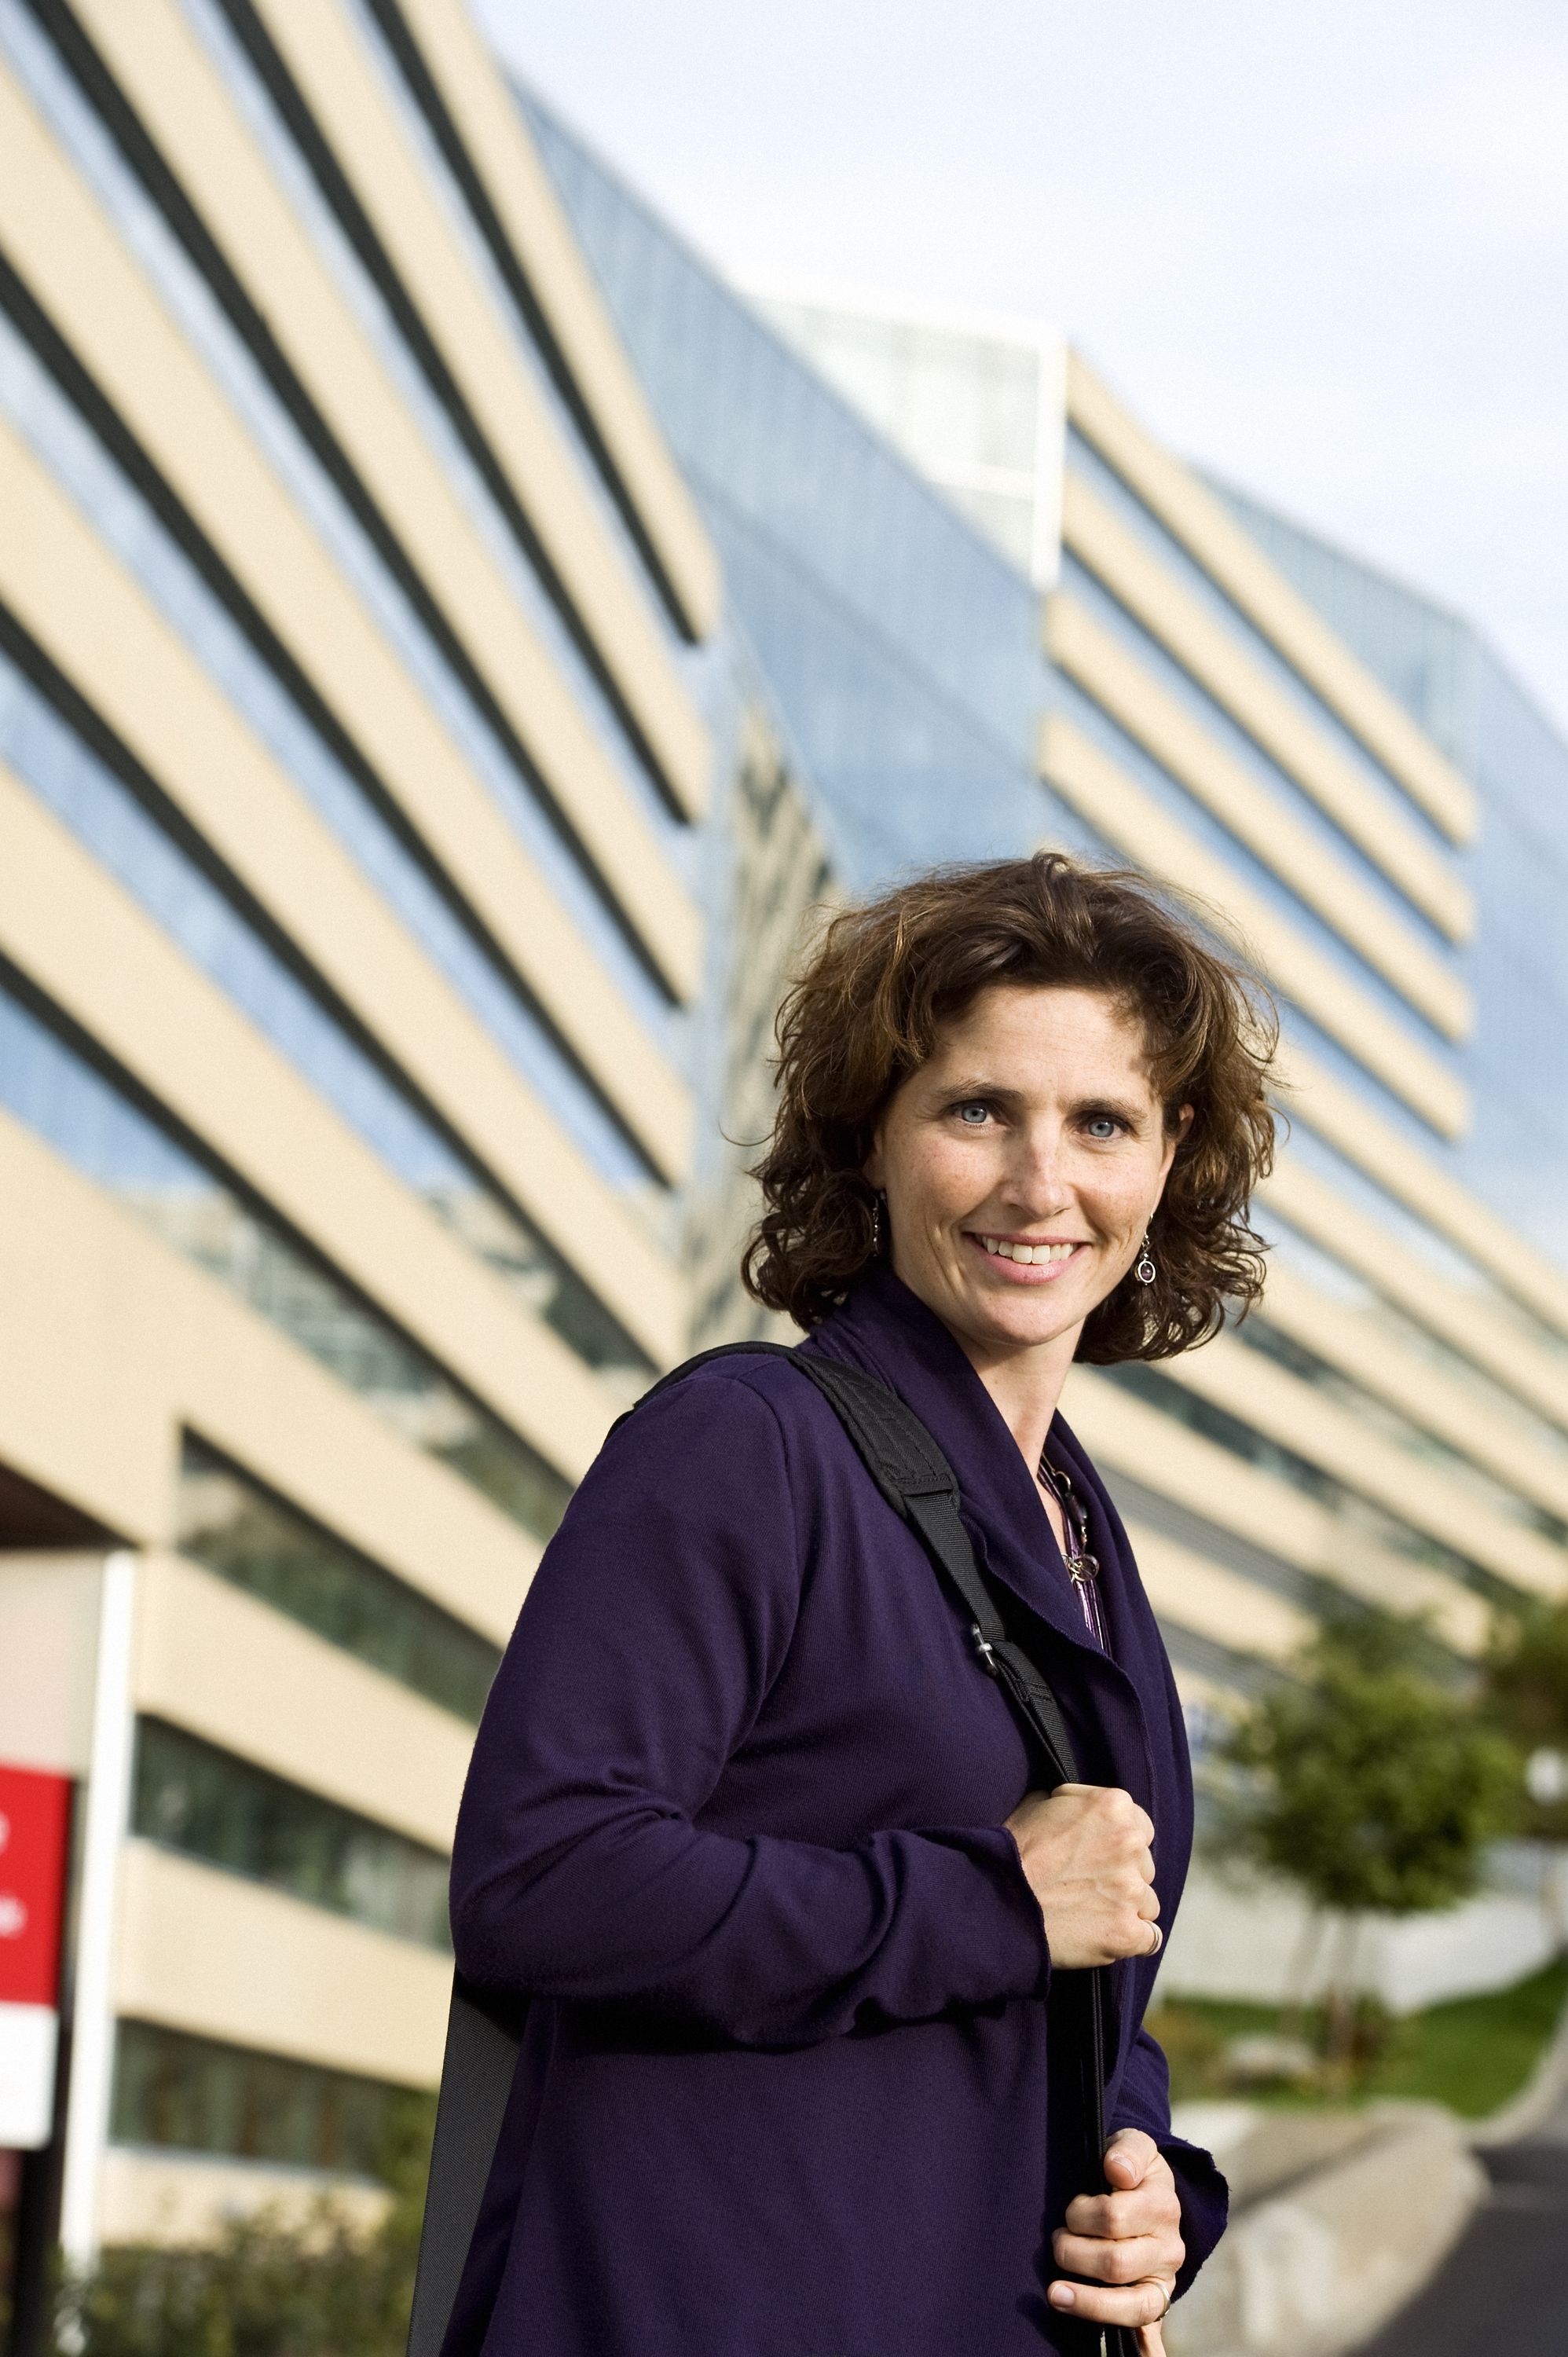 Catherine Morency, Civil, Geological and Mining Engineering Departement, Polytechnique Montréal